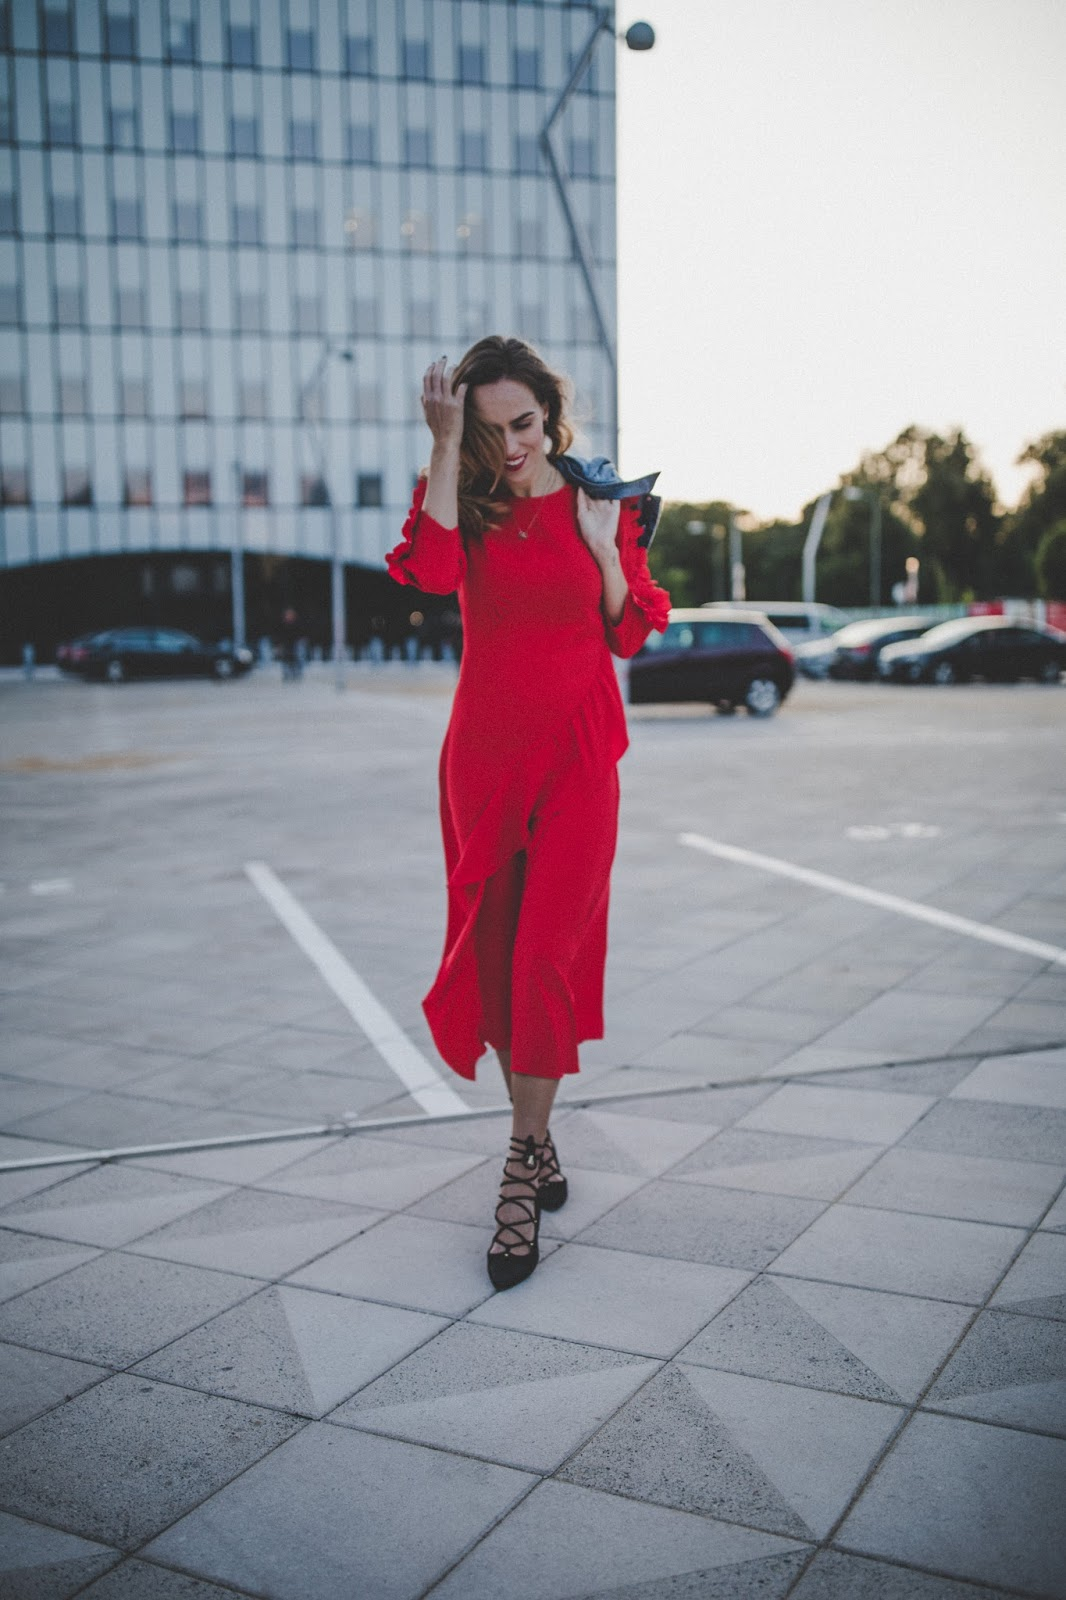 red ruffle midi dress outfit street style